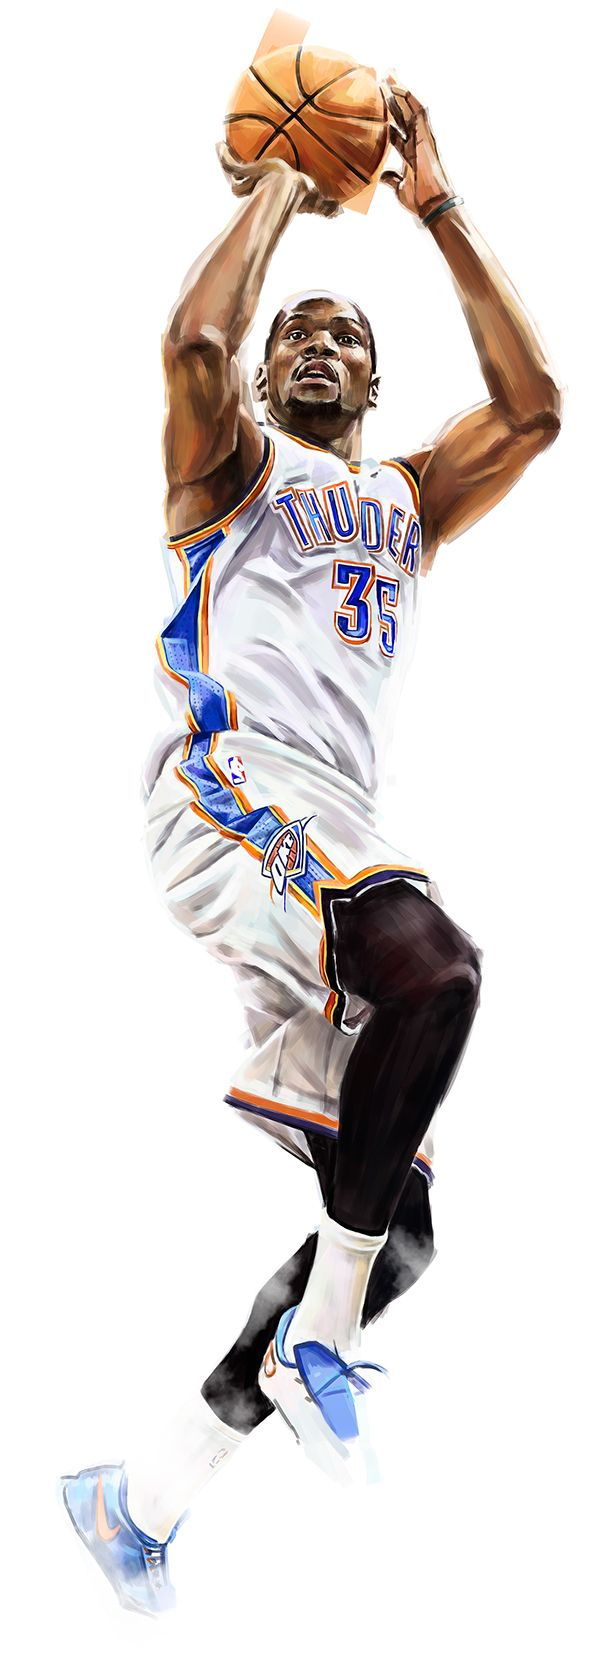 Kevin Durant - Illustrated Print on Behance